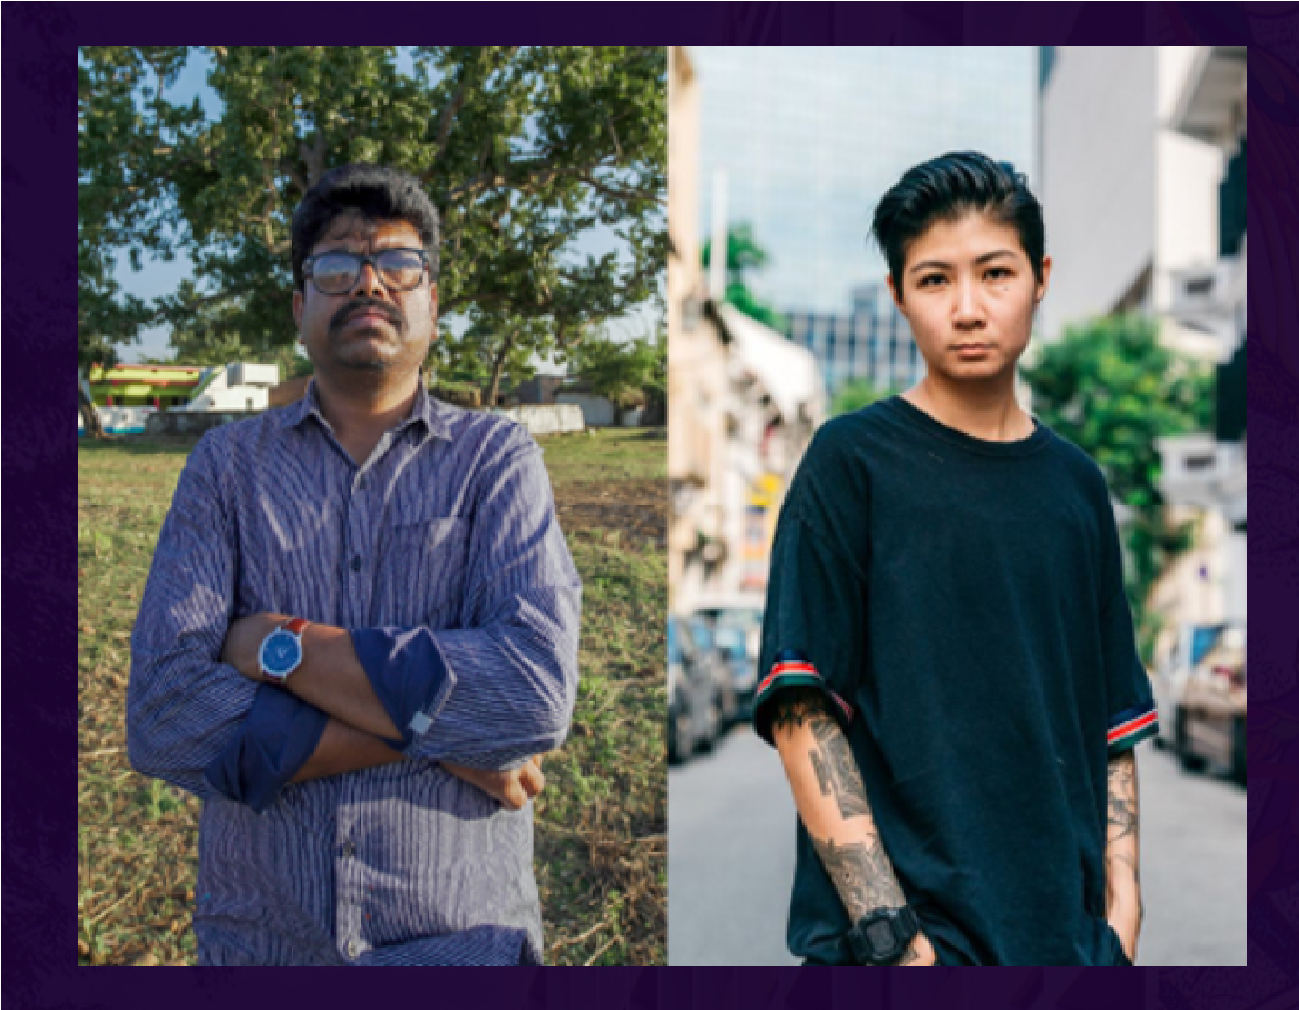 St+art India Foundation and the Singapore Tourism Board made it possible for Shyam Bhajju (left) and Sam Lo (right) to be a part of AWLI 2021 by LASALLE College of the Arts. Photo Courtesy: AWLI